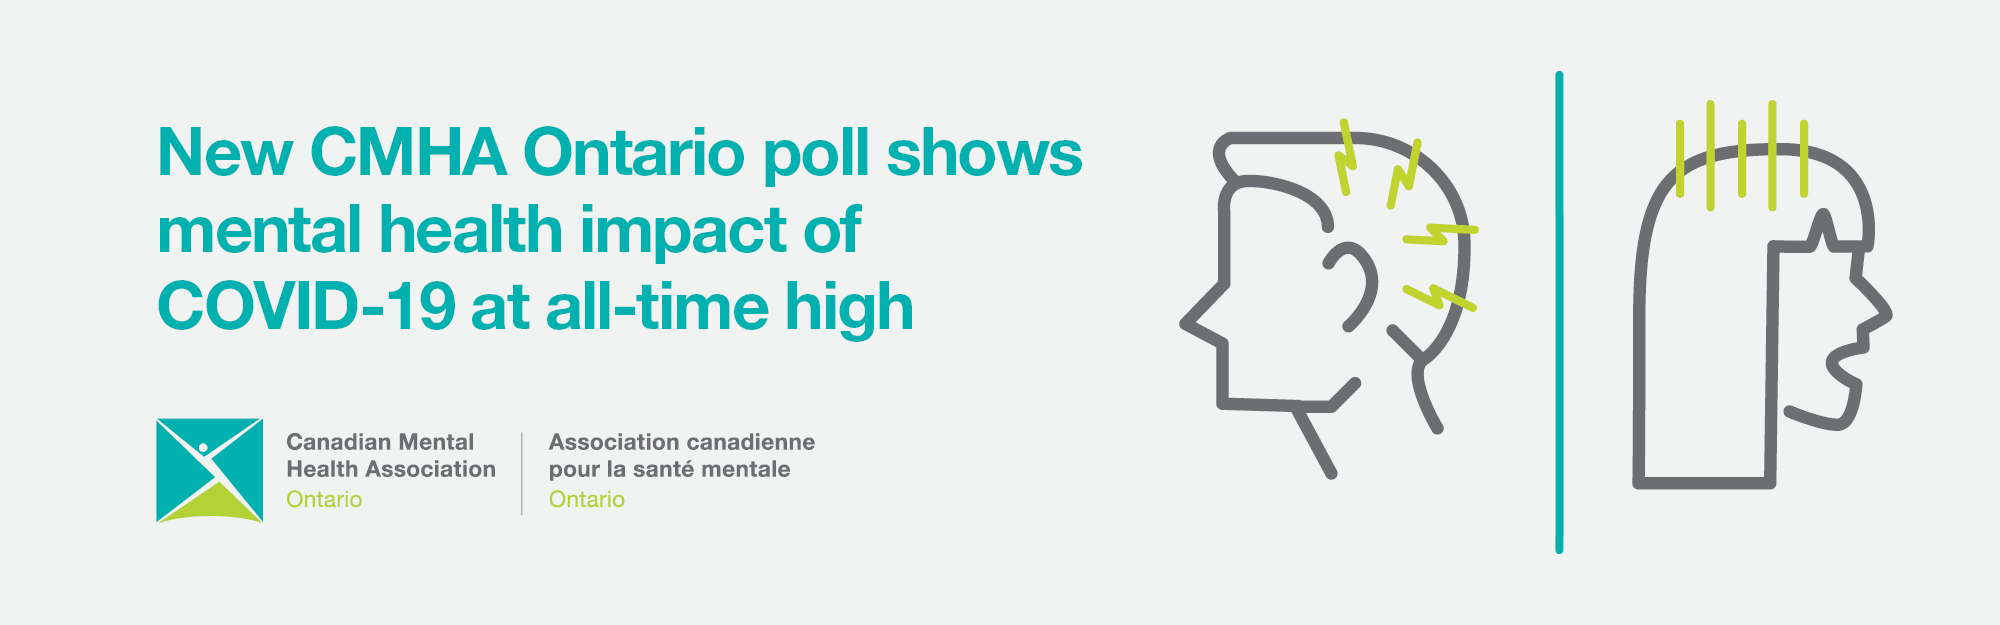 Third poll in CMHA Ontario series indicates   mental health impact of COVID-19 at all-time high